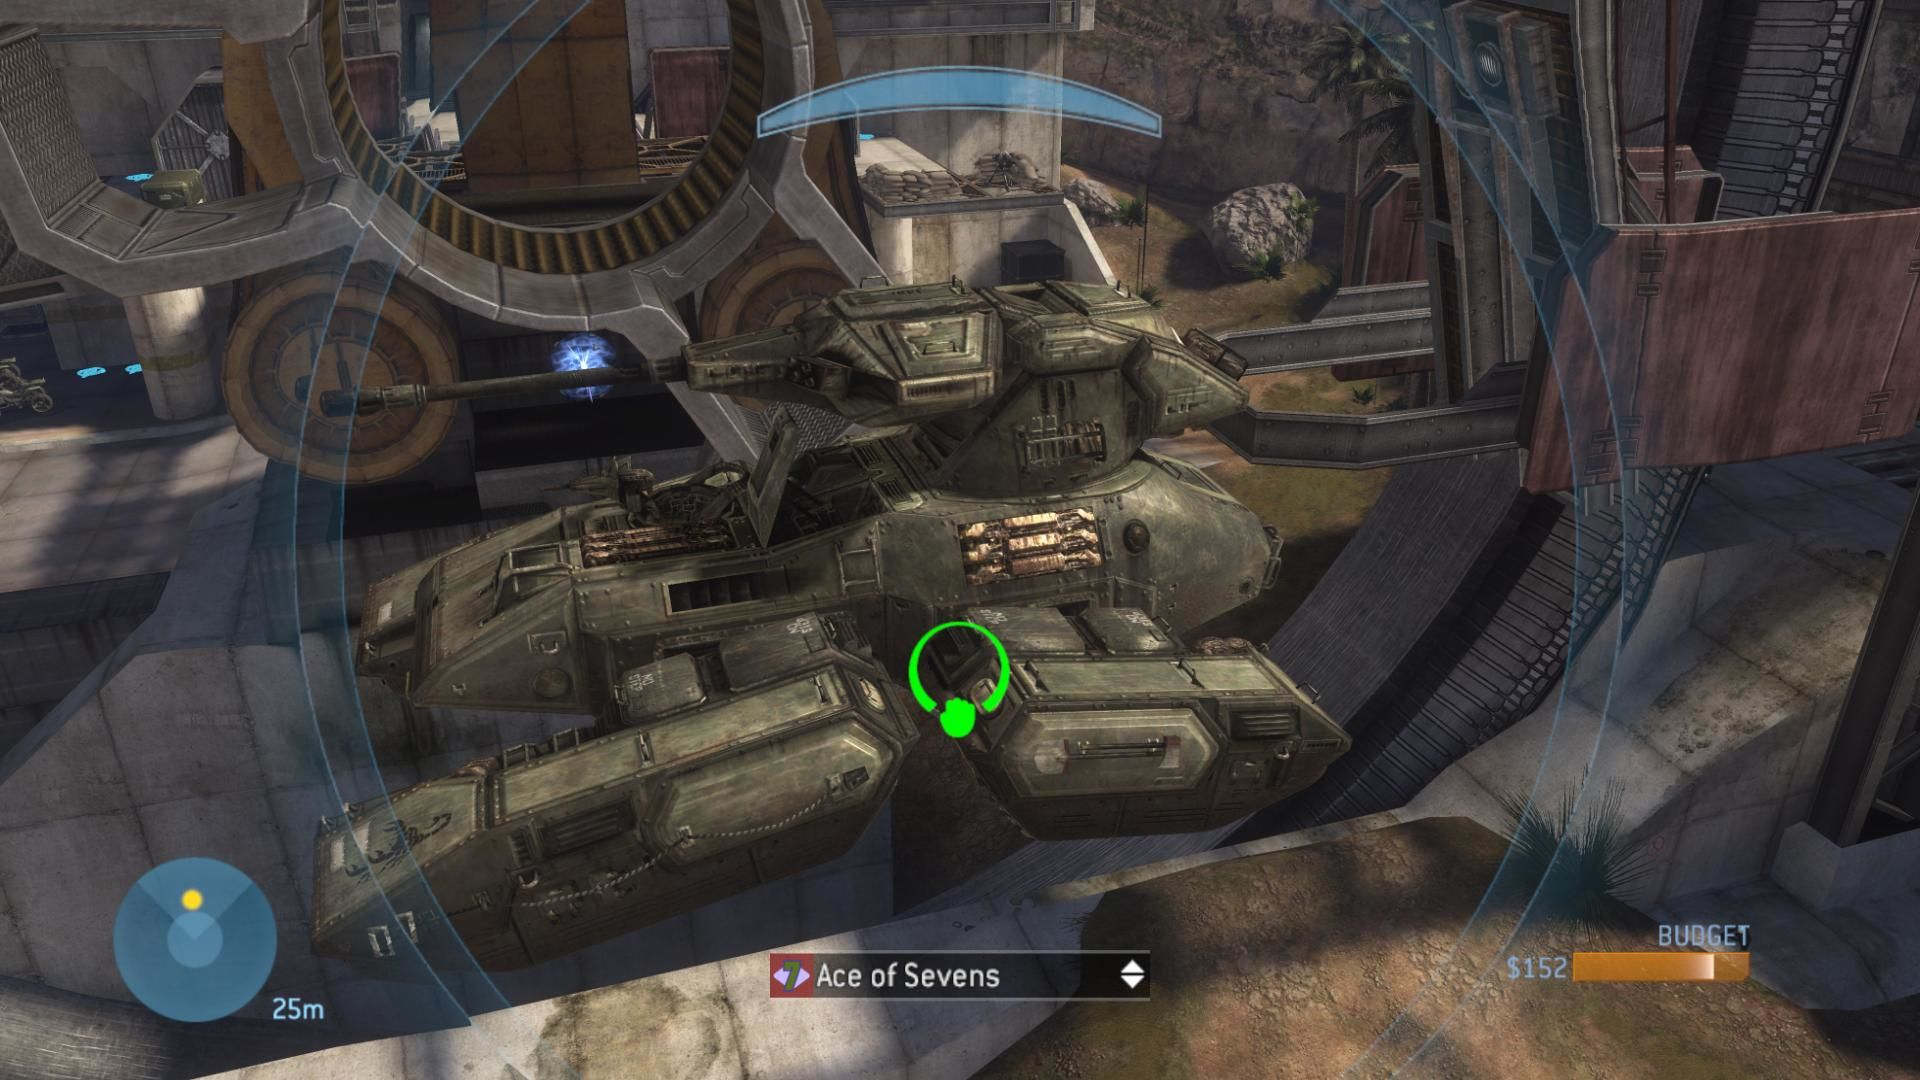 Halo 3 Xbox 360 Placing a Scorpion tank on Last Resort in Forge.